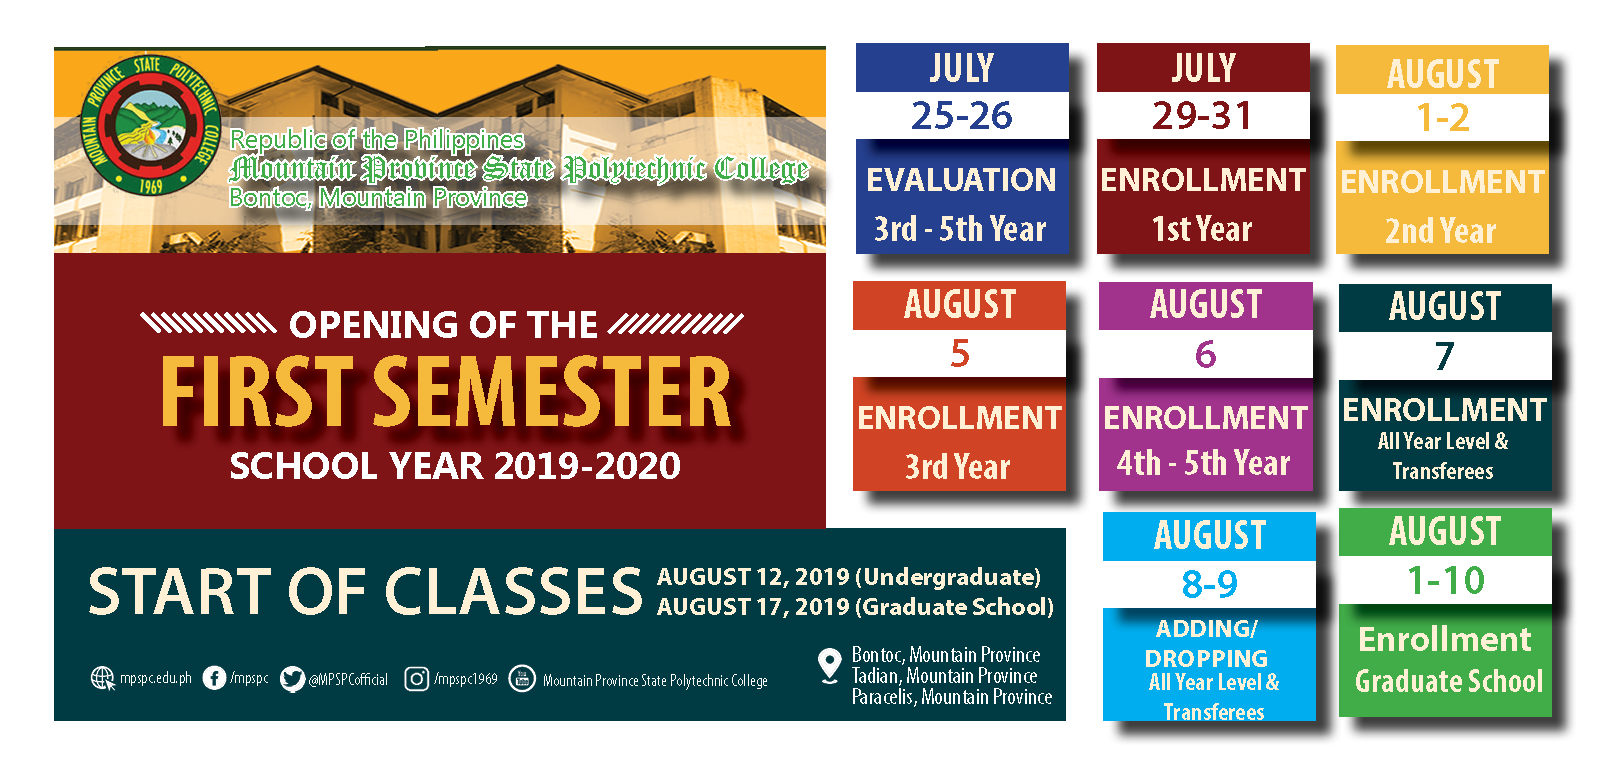 Enrollment Schedule for First Semester SY 2019-2020